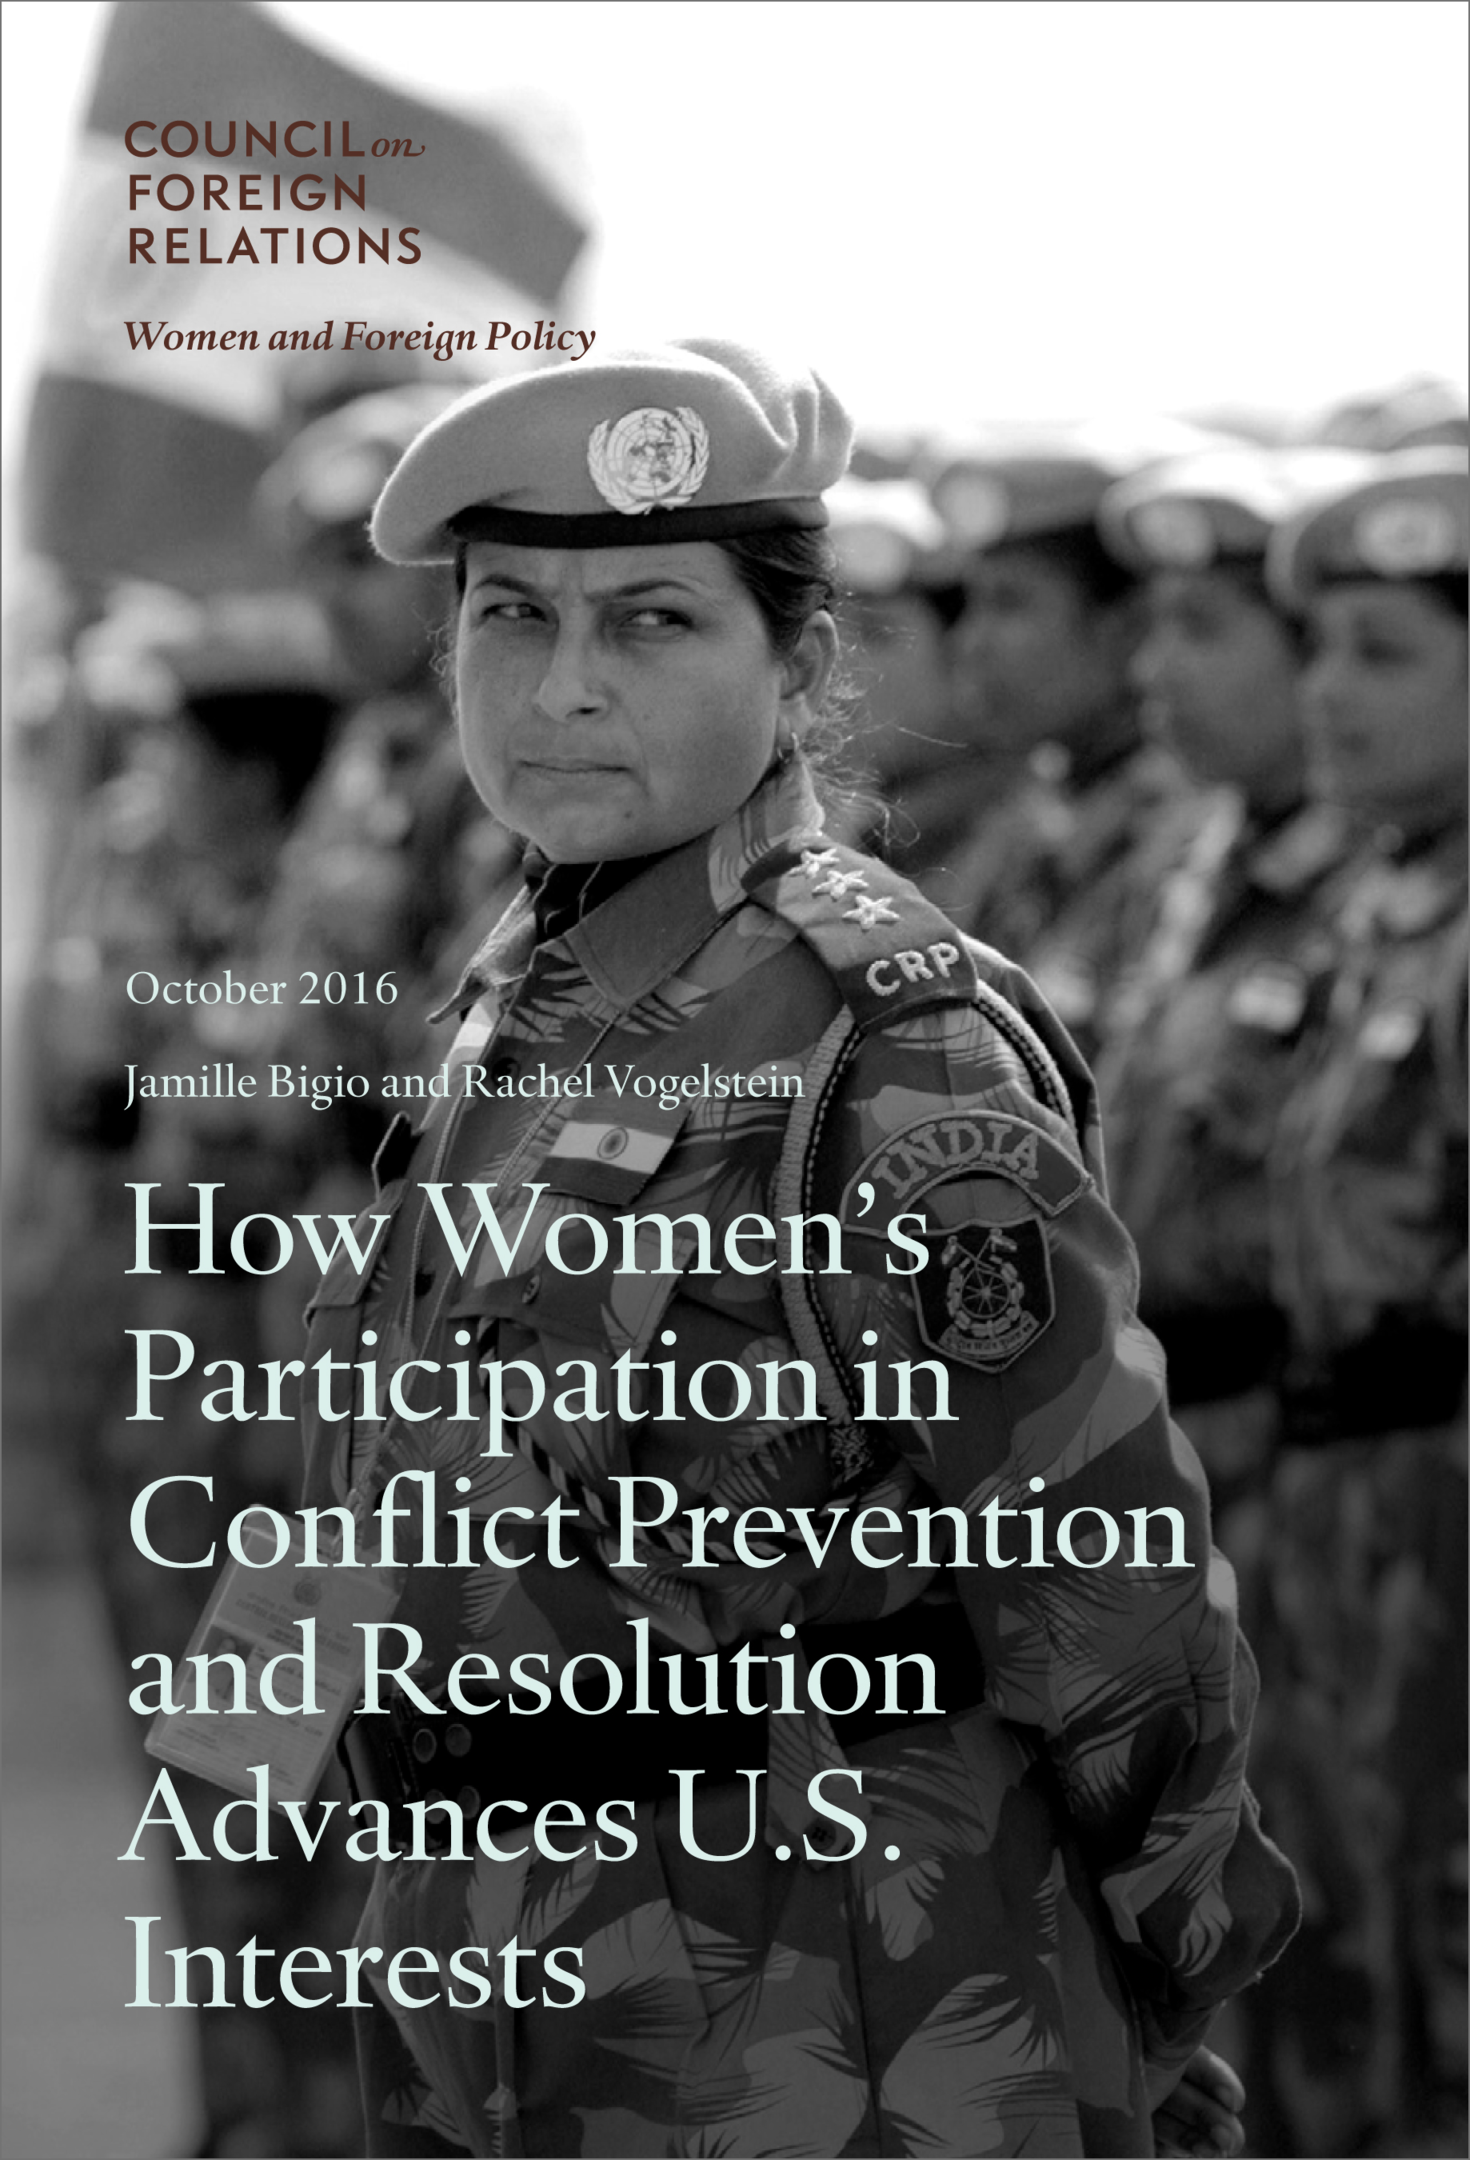 How Women's Participation in Conflict Prevention